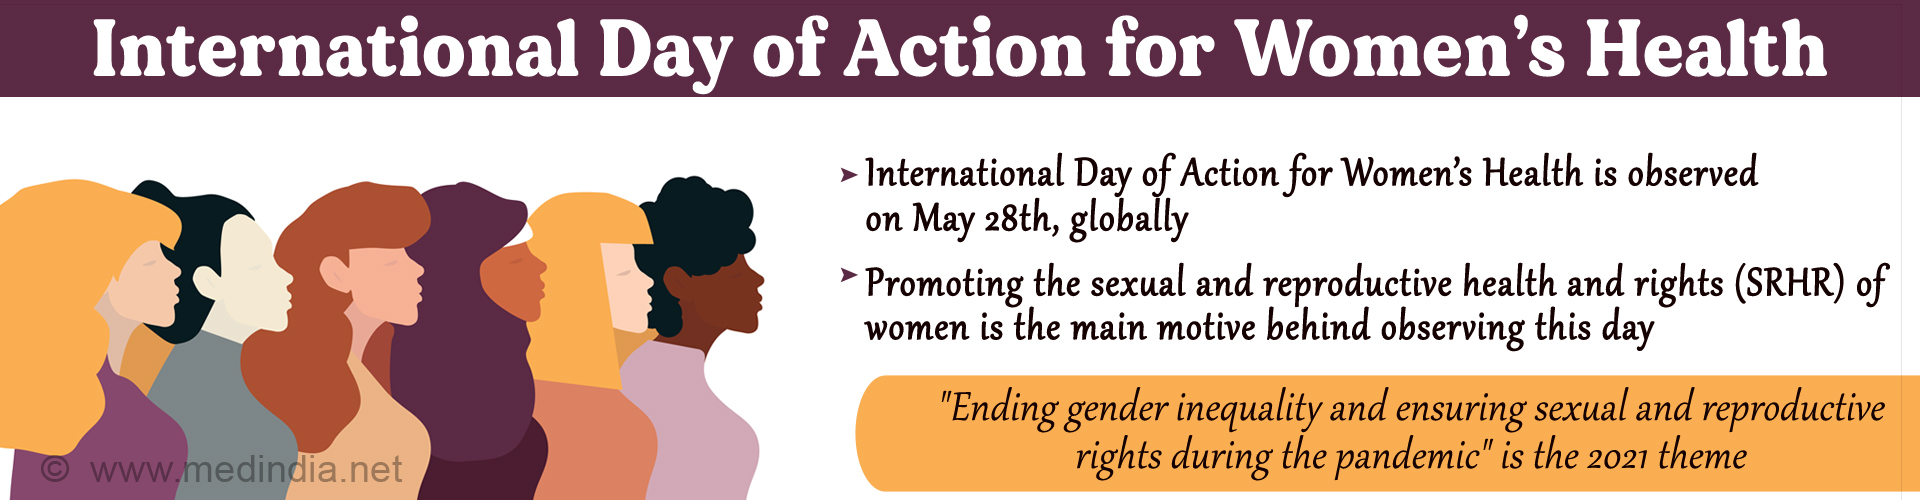 International Day of Action For Women's Health 2017 - Women's Health Matters